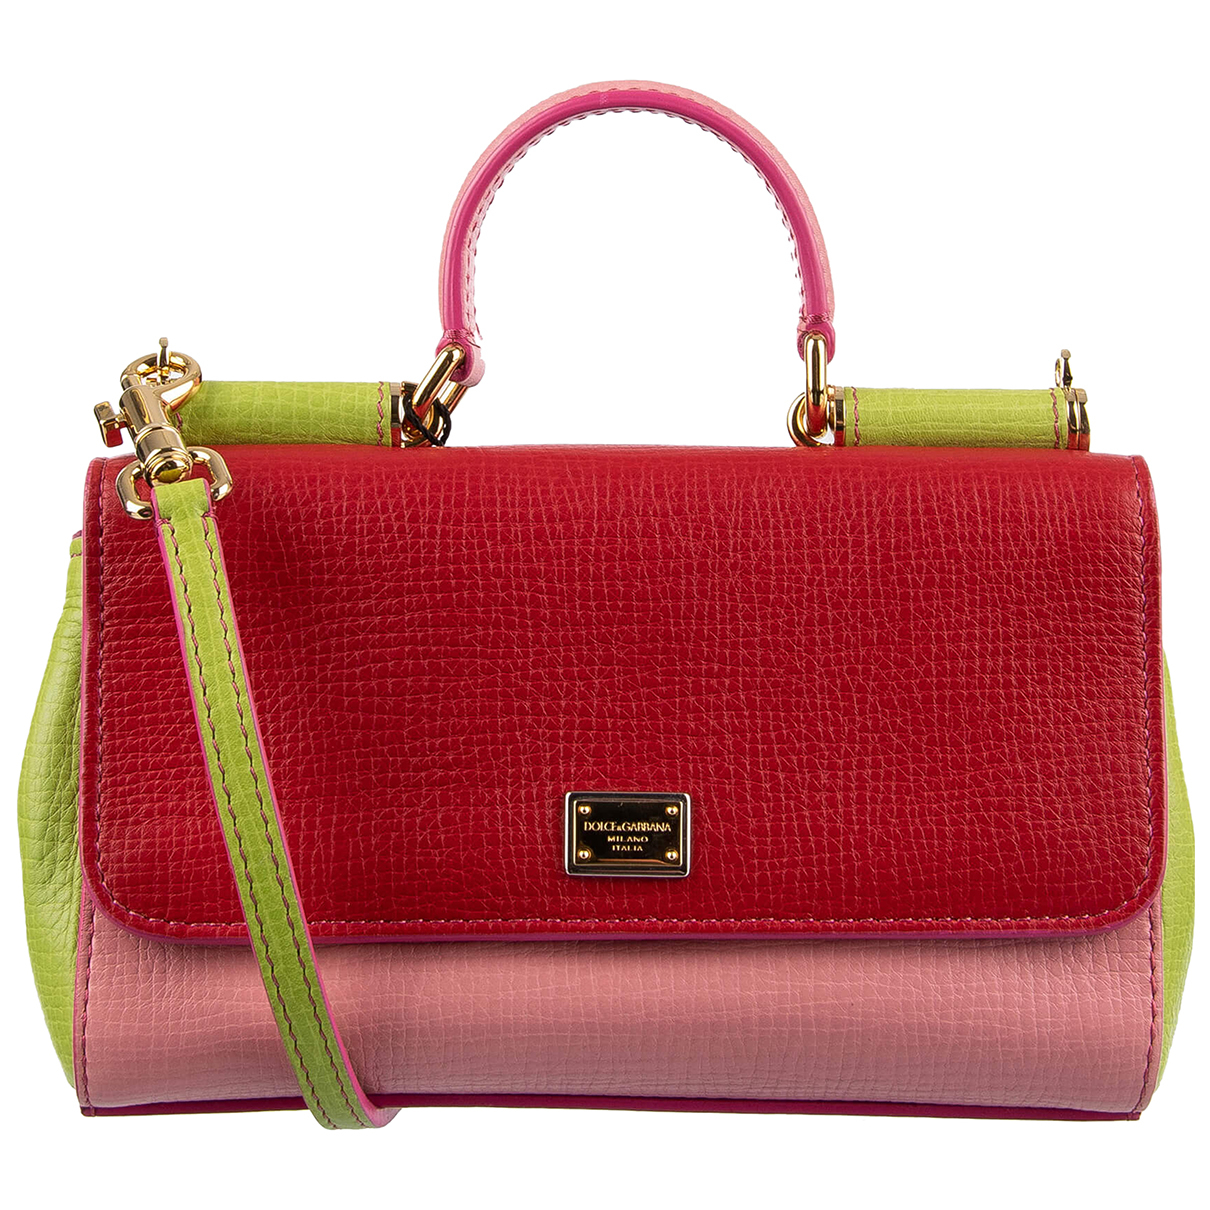 Dolce & Gabbana Sicily Red Leather handbag for Women \N